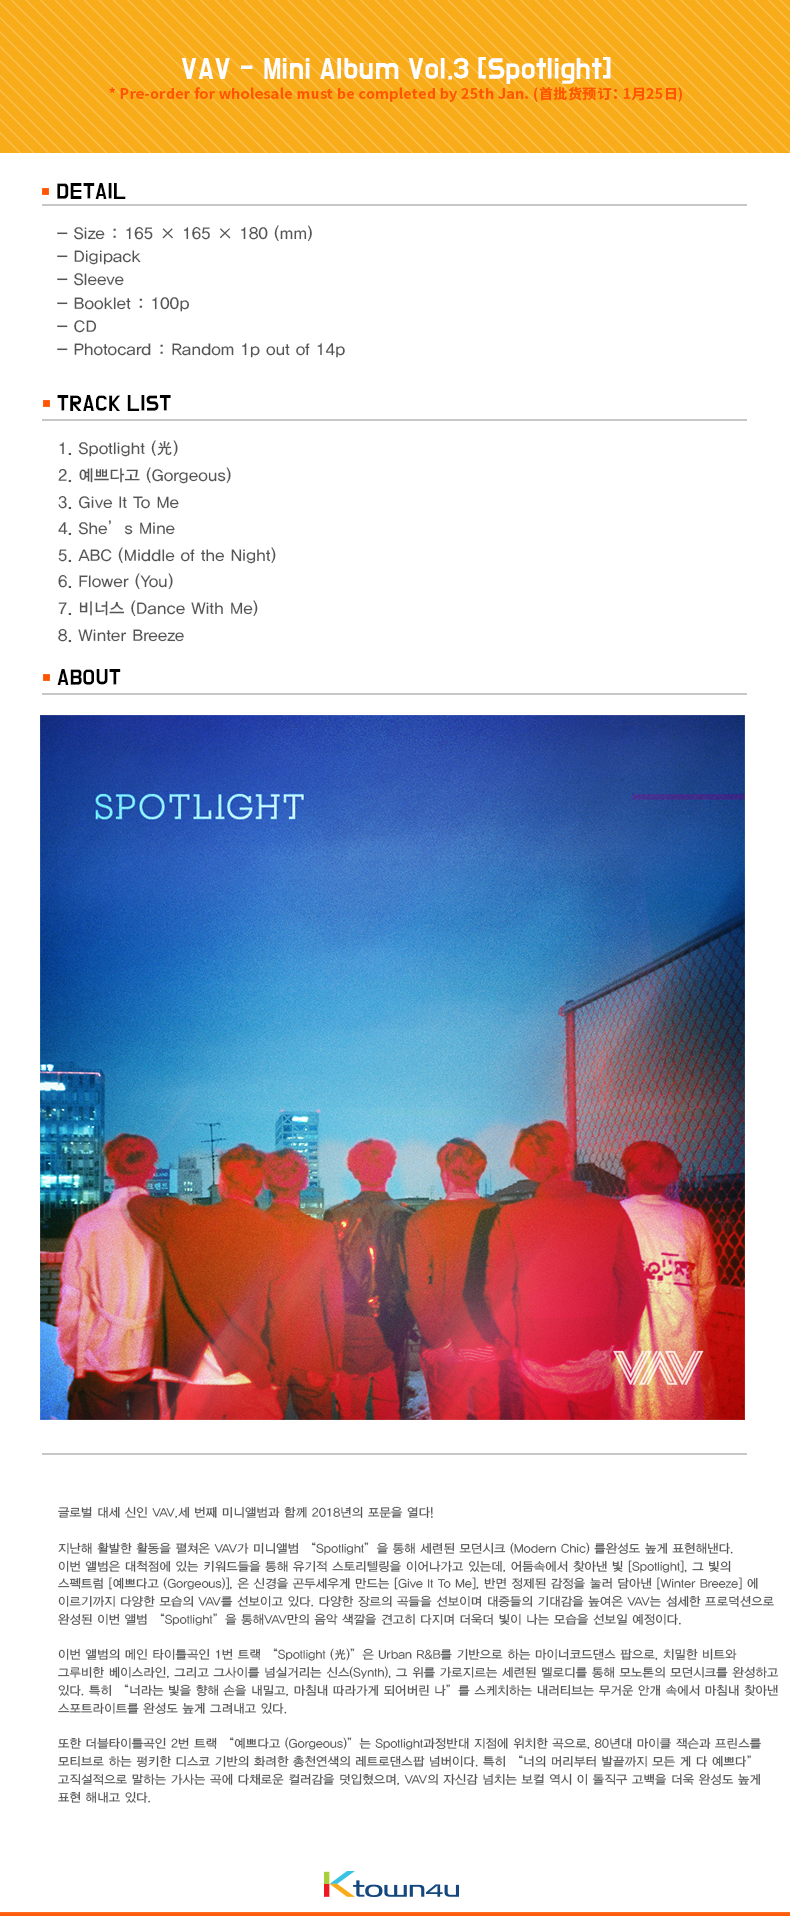 VAV - Mini Album Vol.3 [Spotlight]